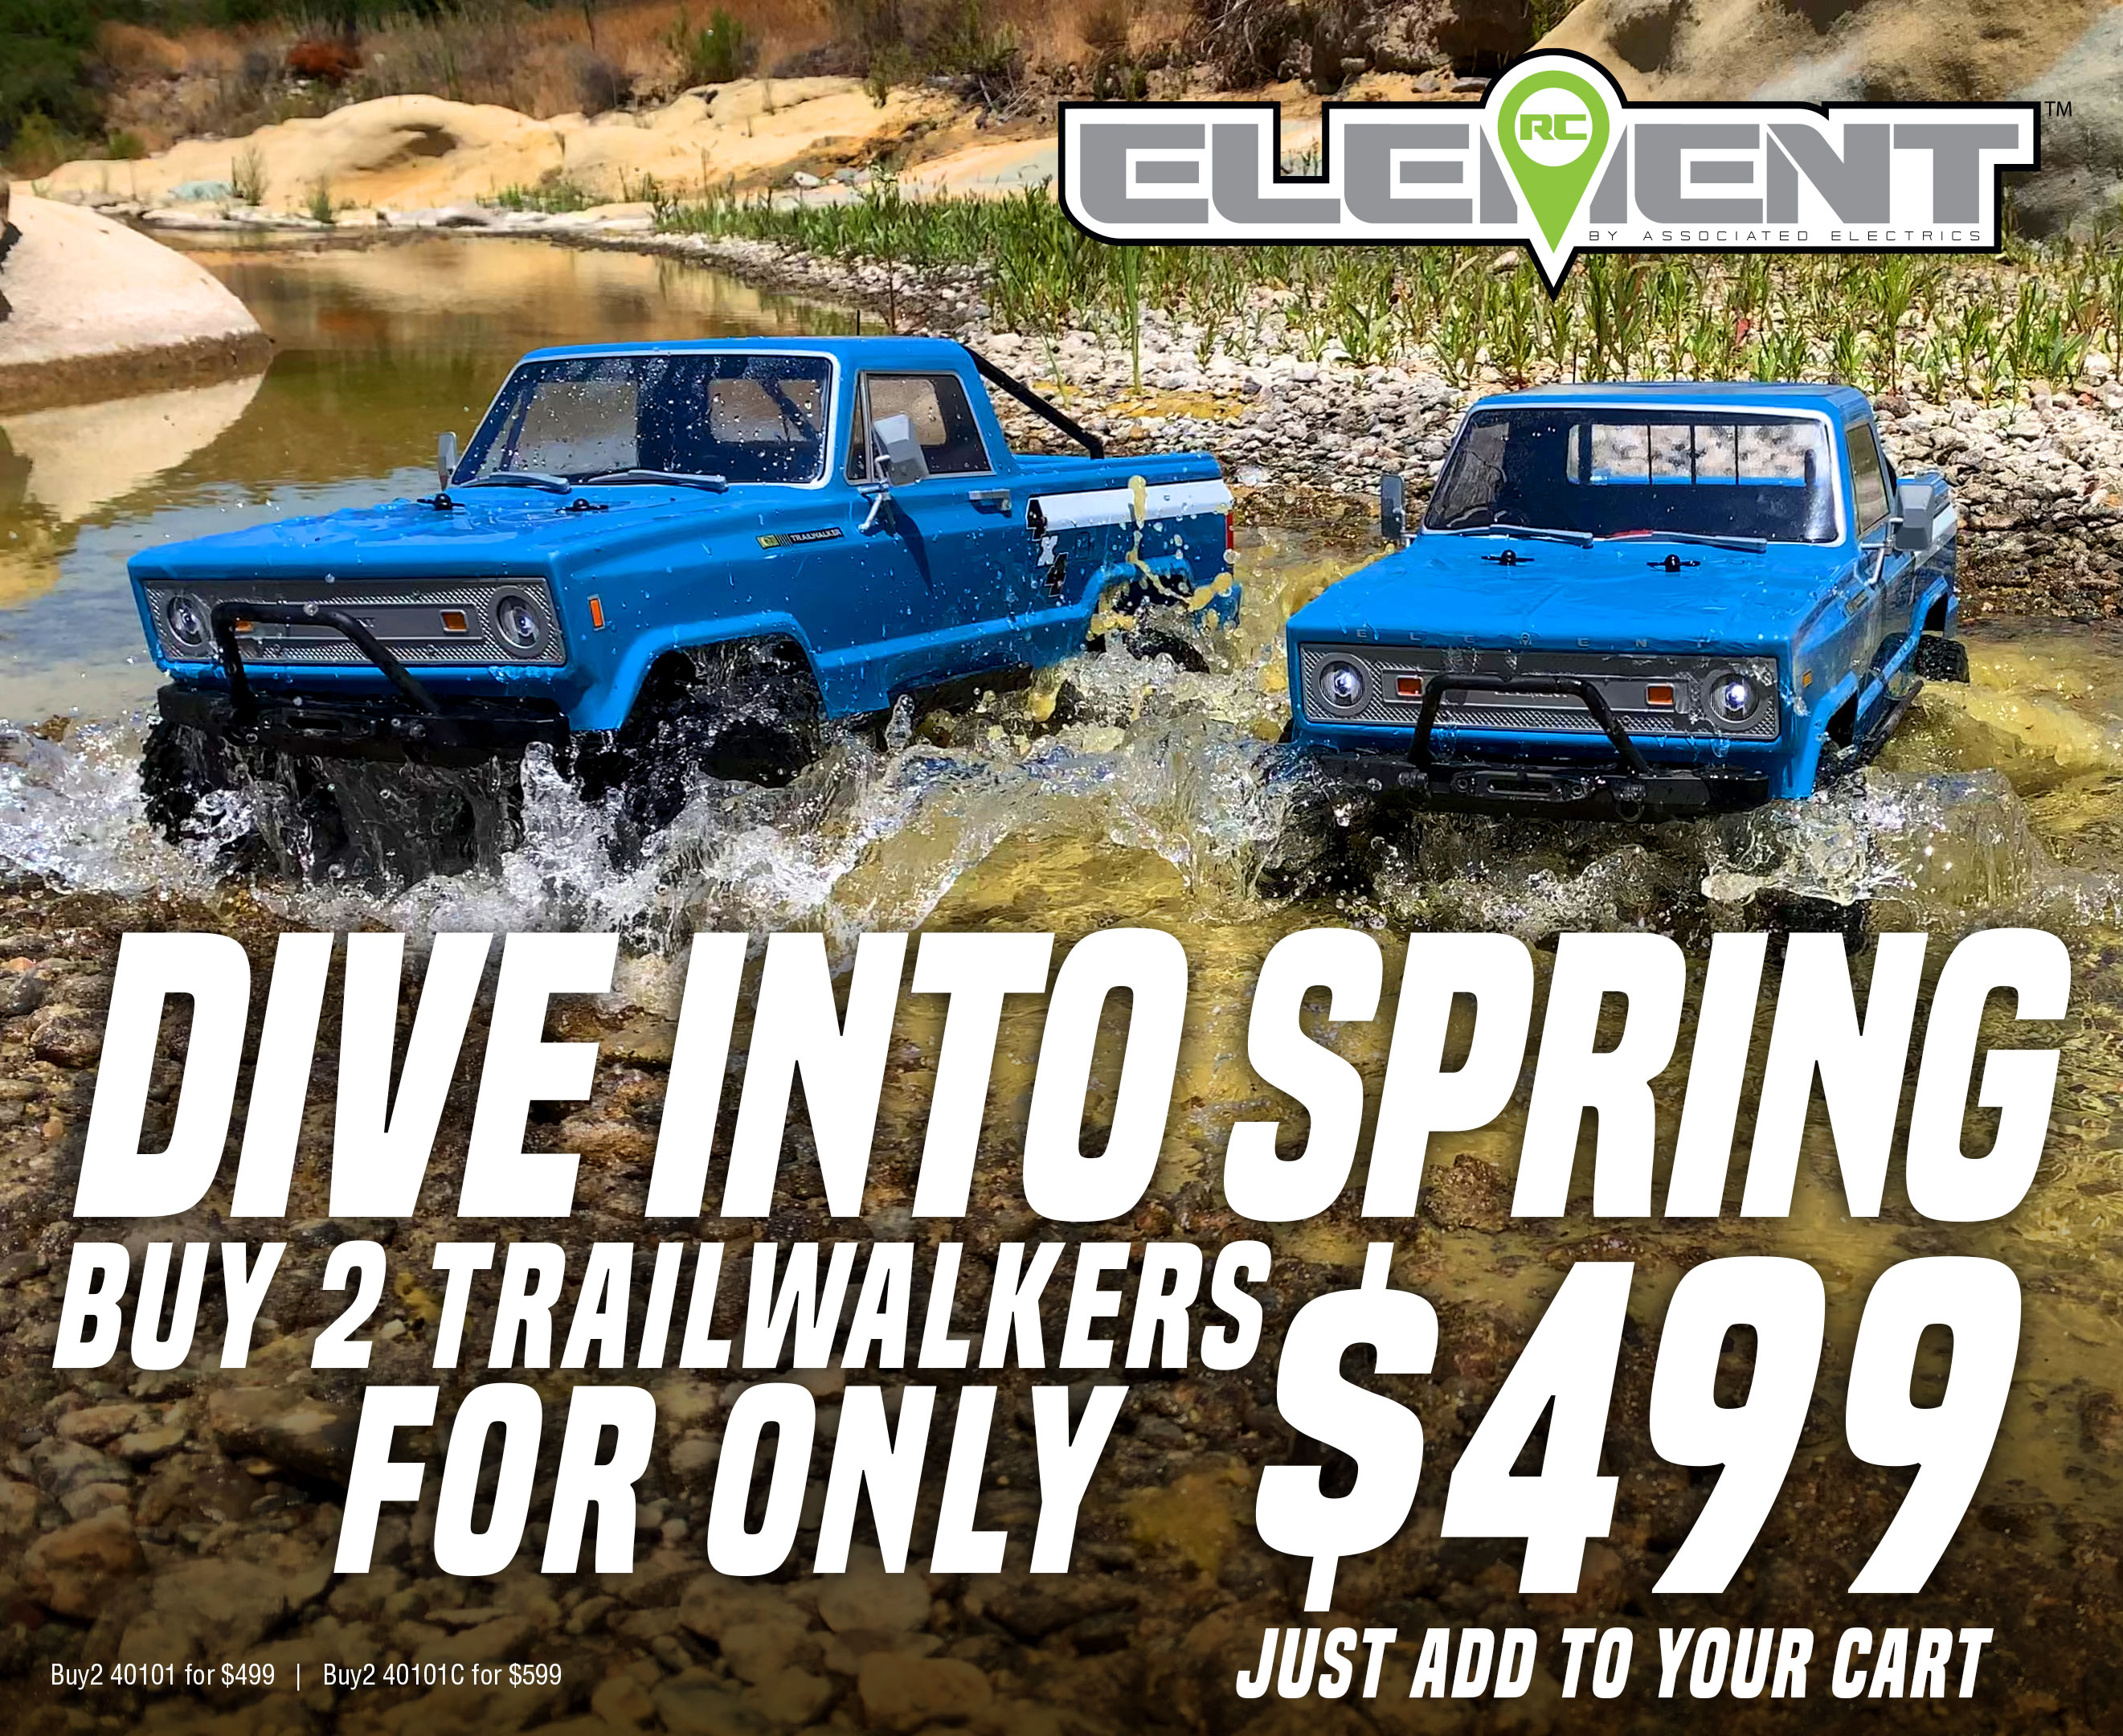 Trail Walker Promotional Sale